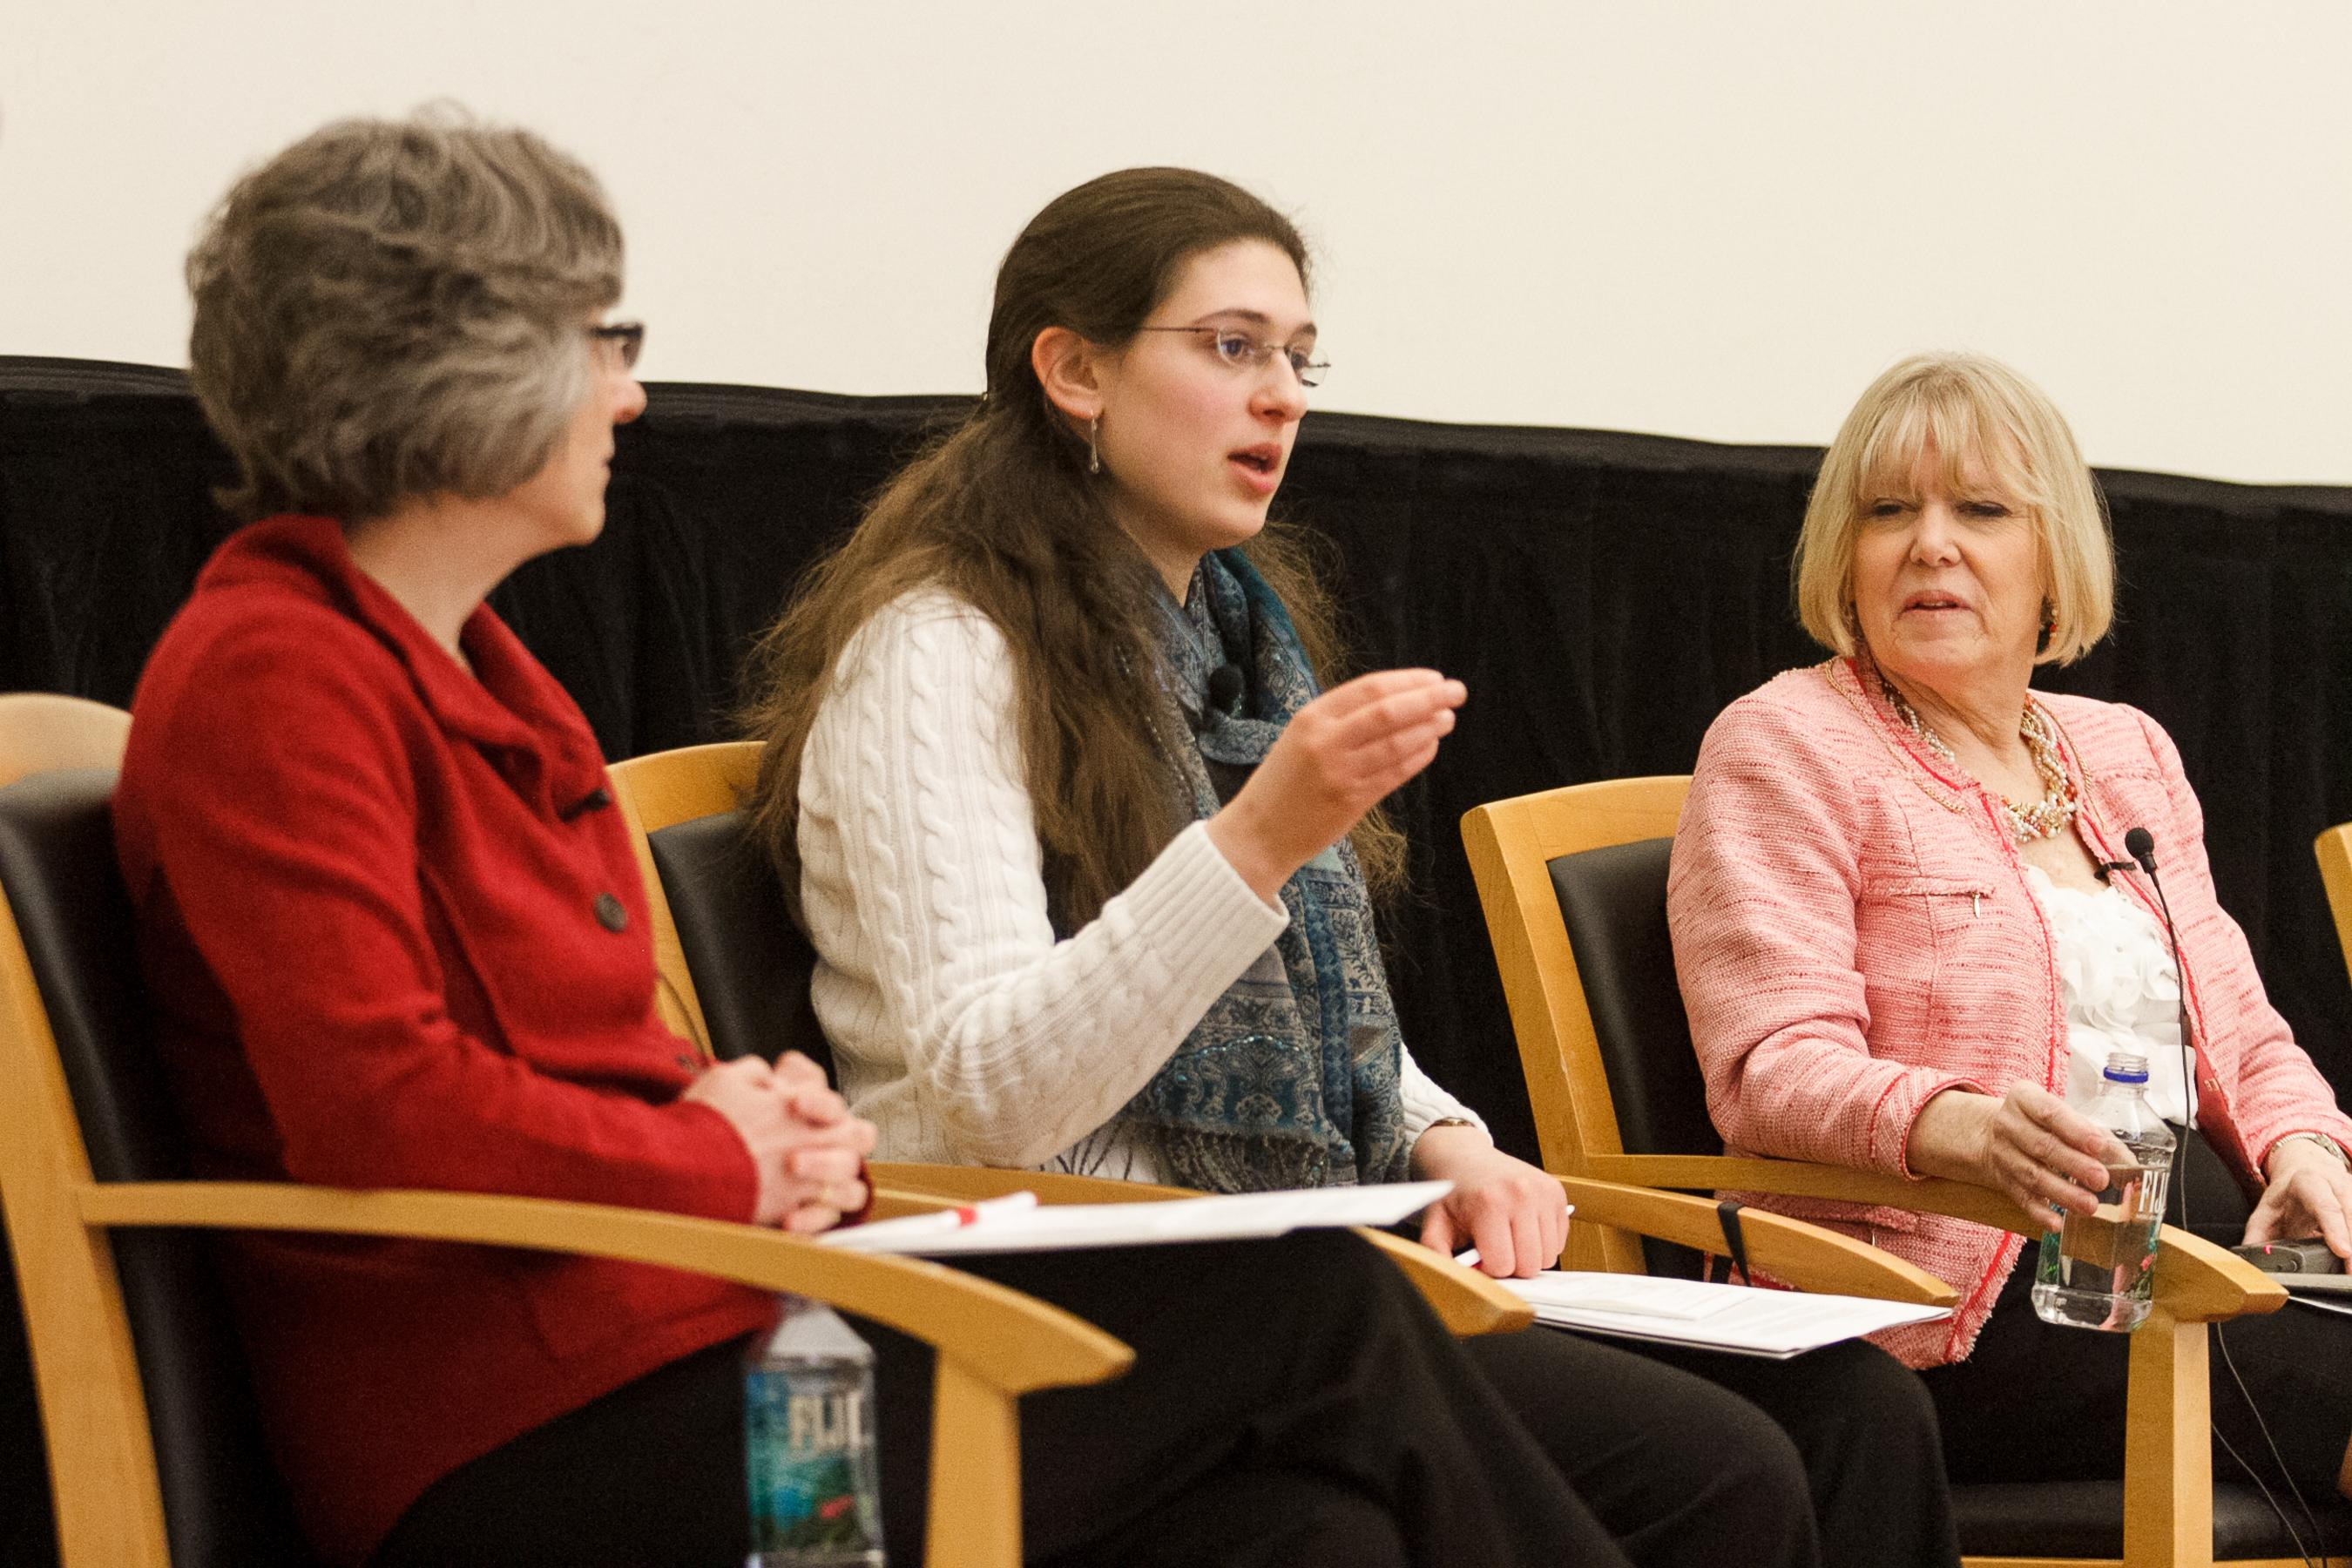 panel discussion dissects women's progress